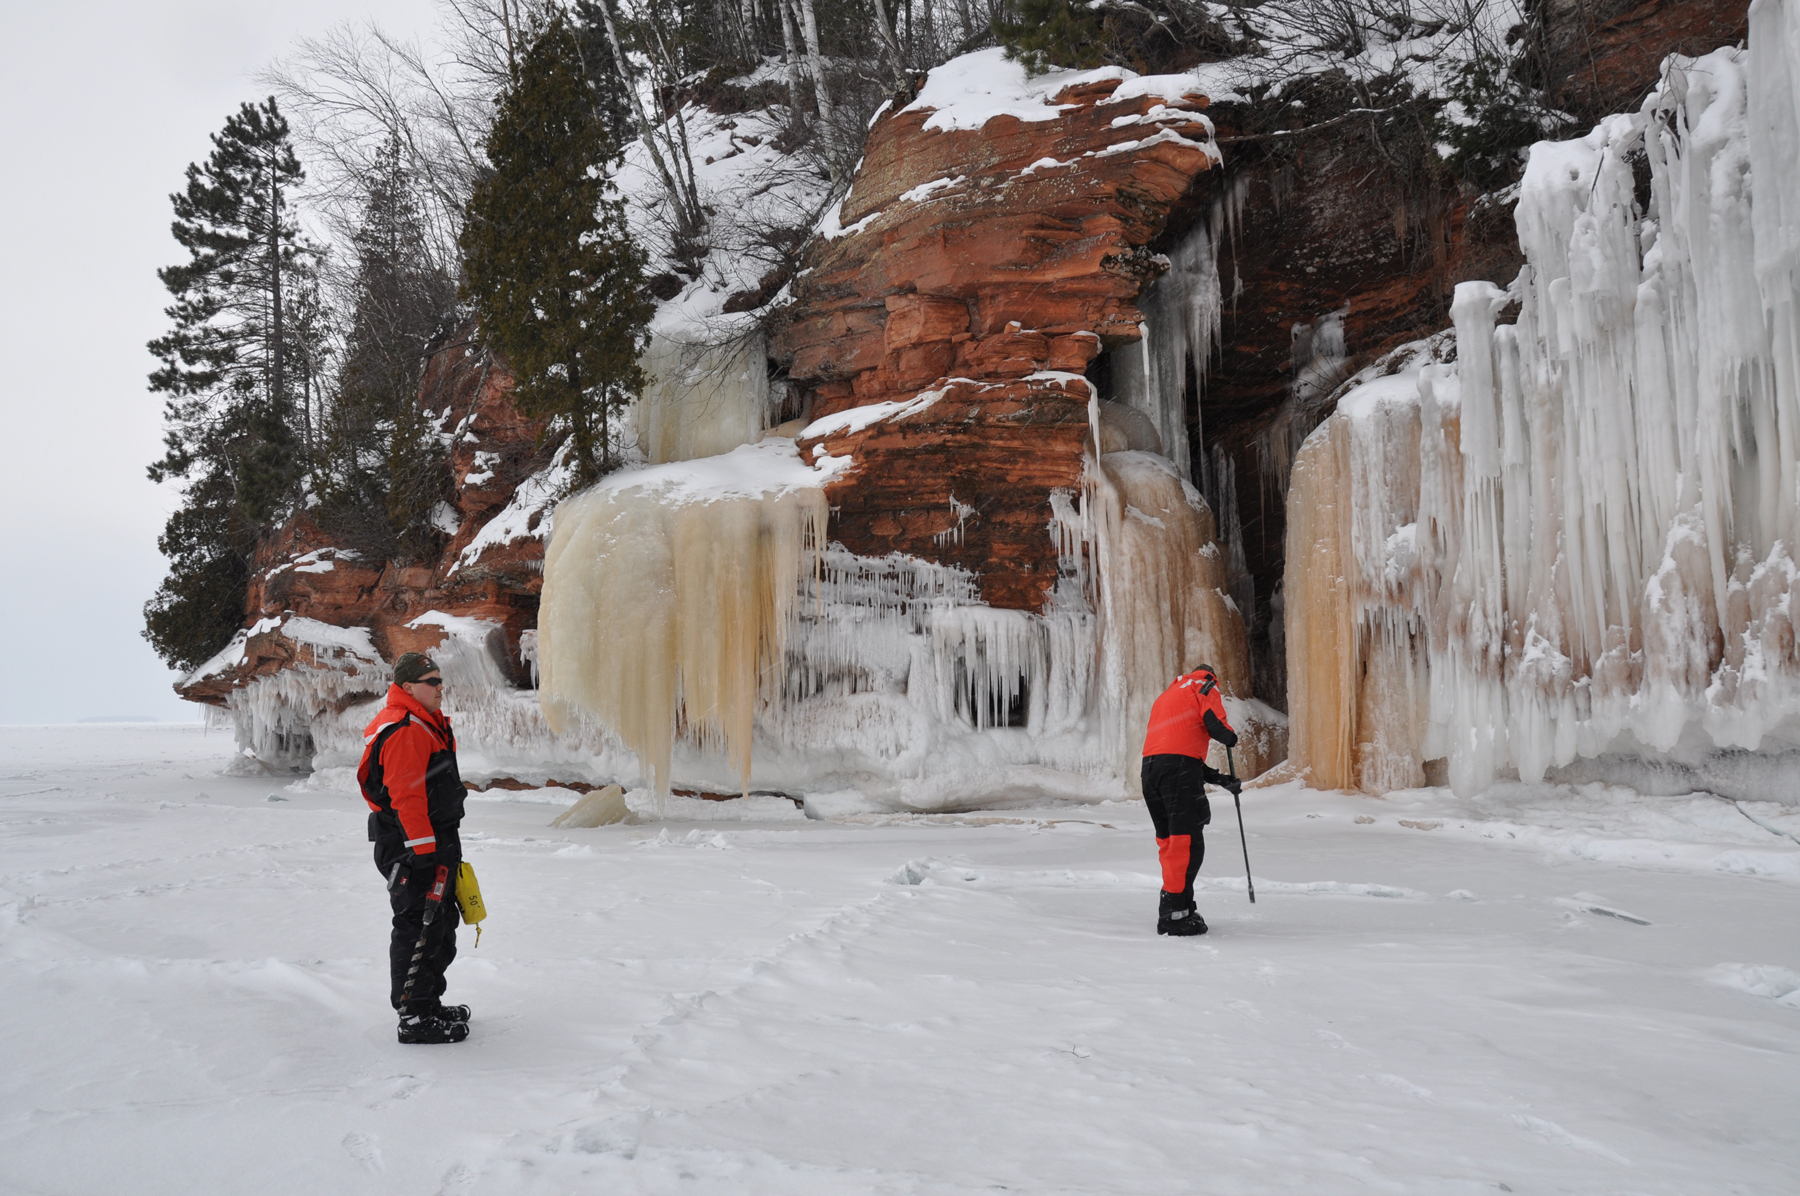 Jason (right) checking ice conditions at the ice caves